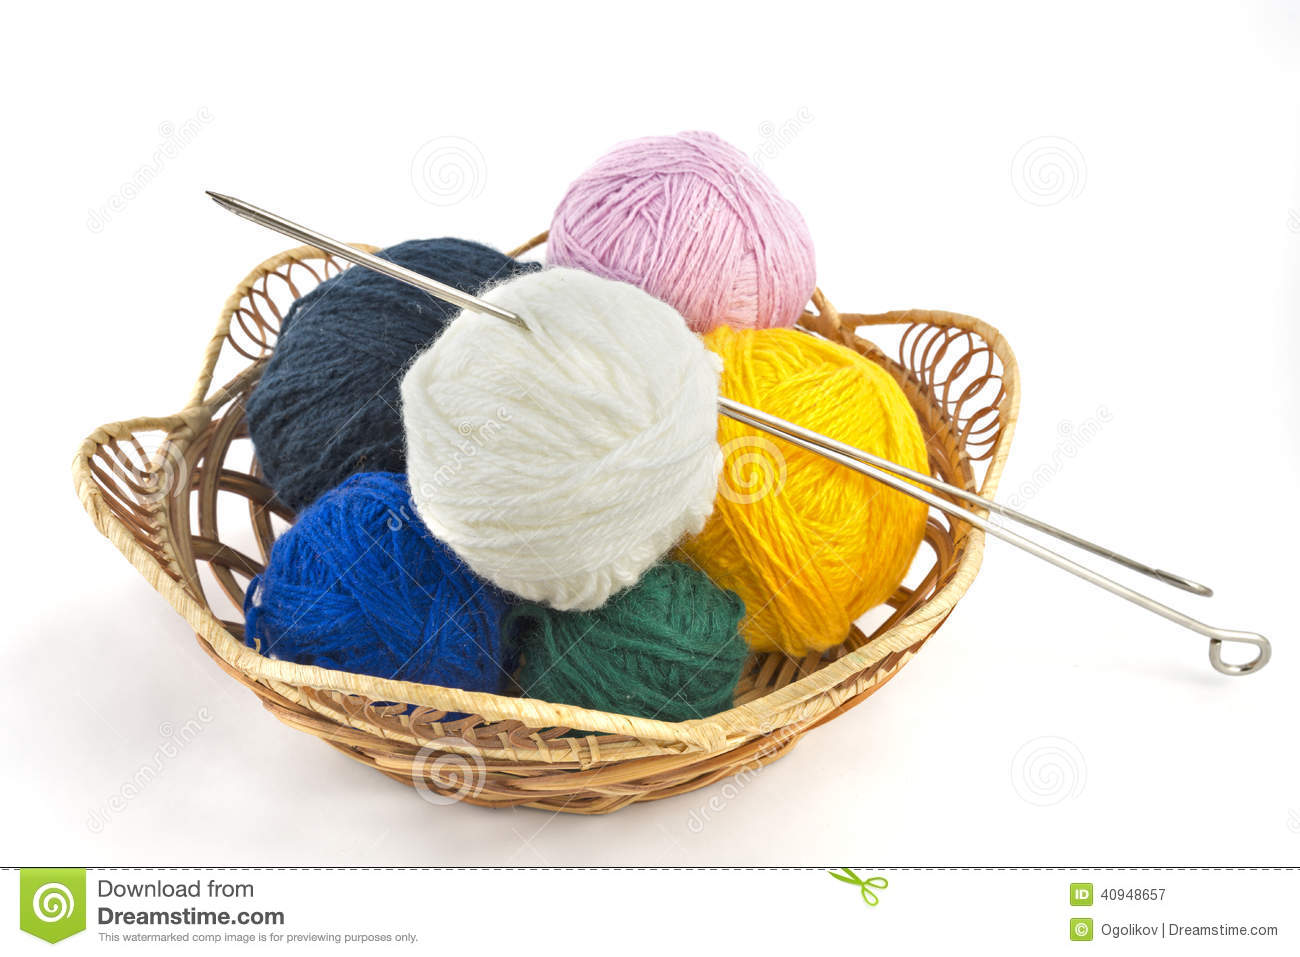 Rattan Yarn Knitting Yarn Balls And Needles In Basket On A White